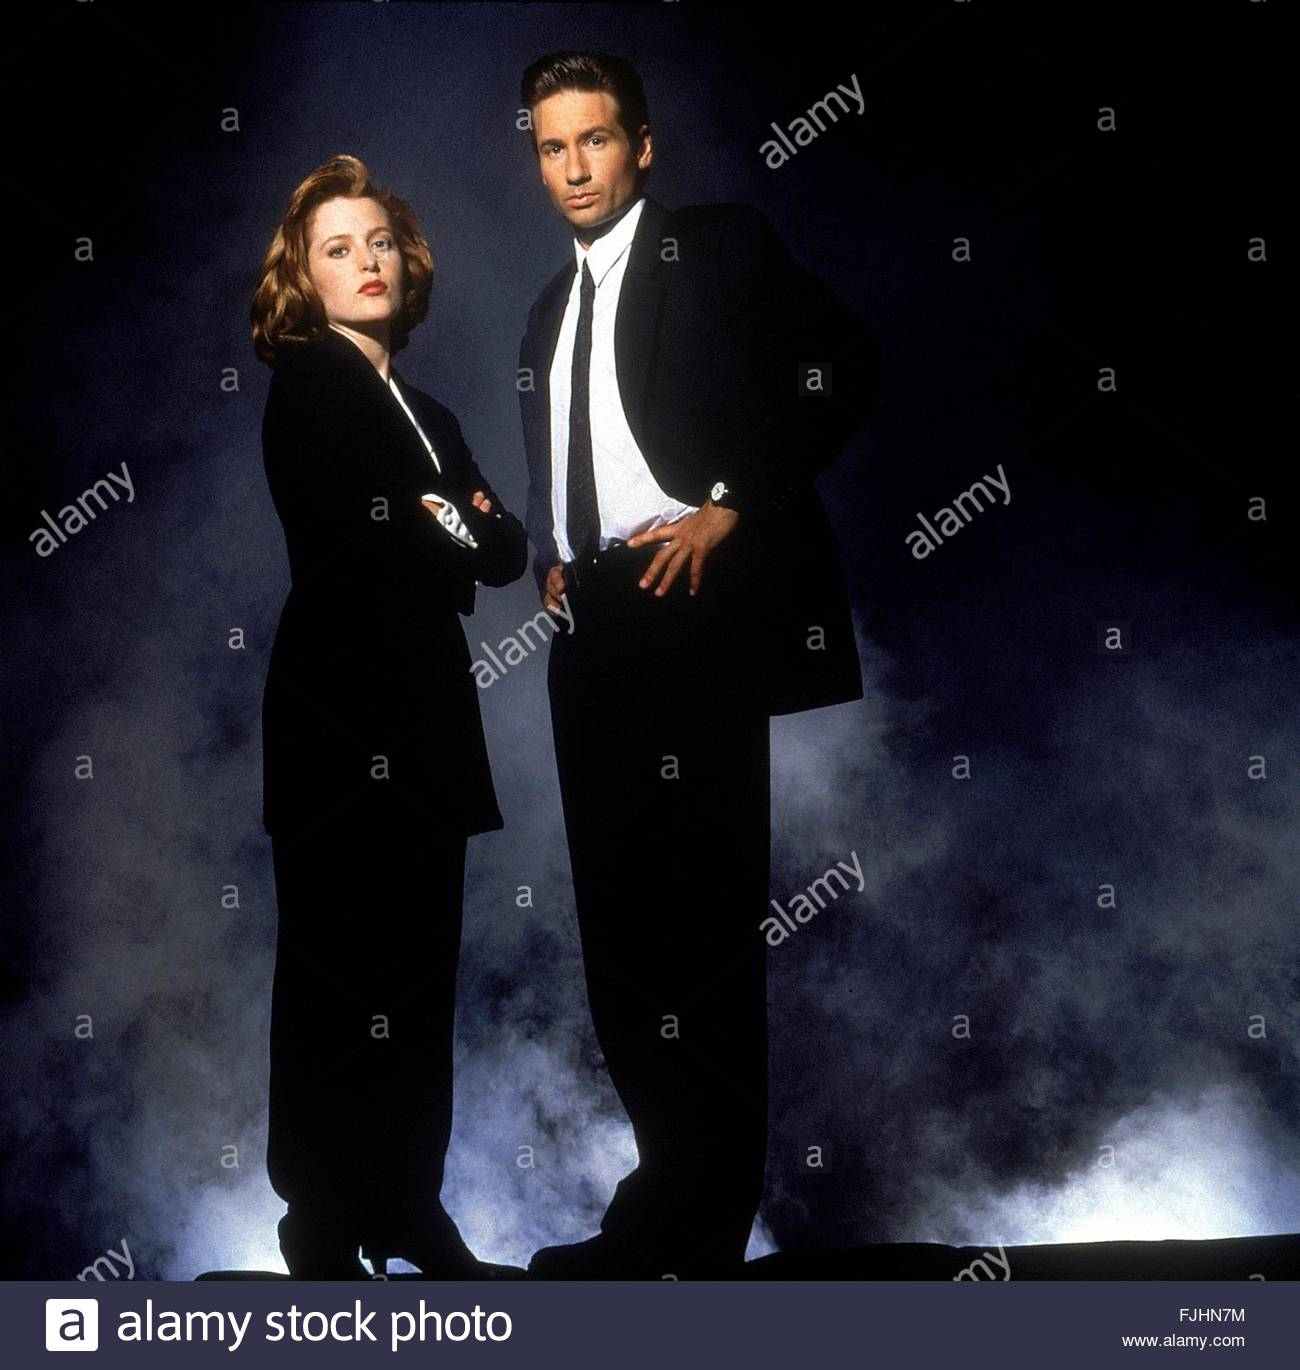 GILLIAN ANDERSON & DAVID DUCHOVNY THE X FILES (1993) - Stock Image